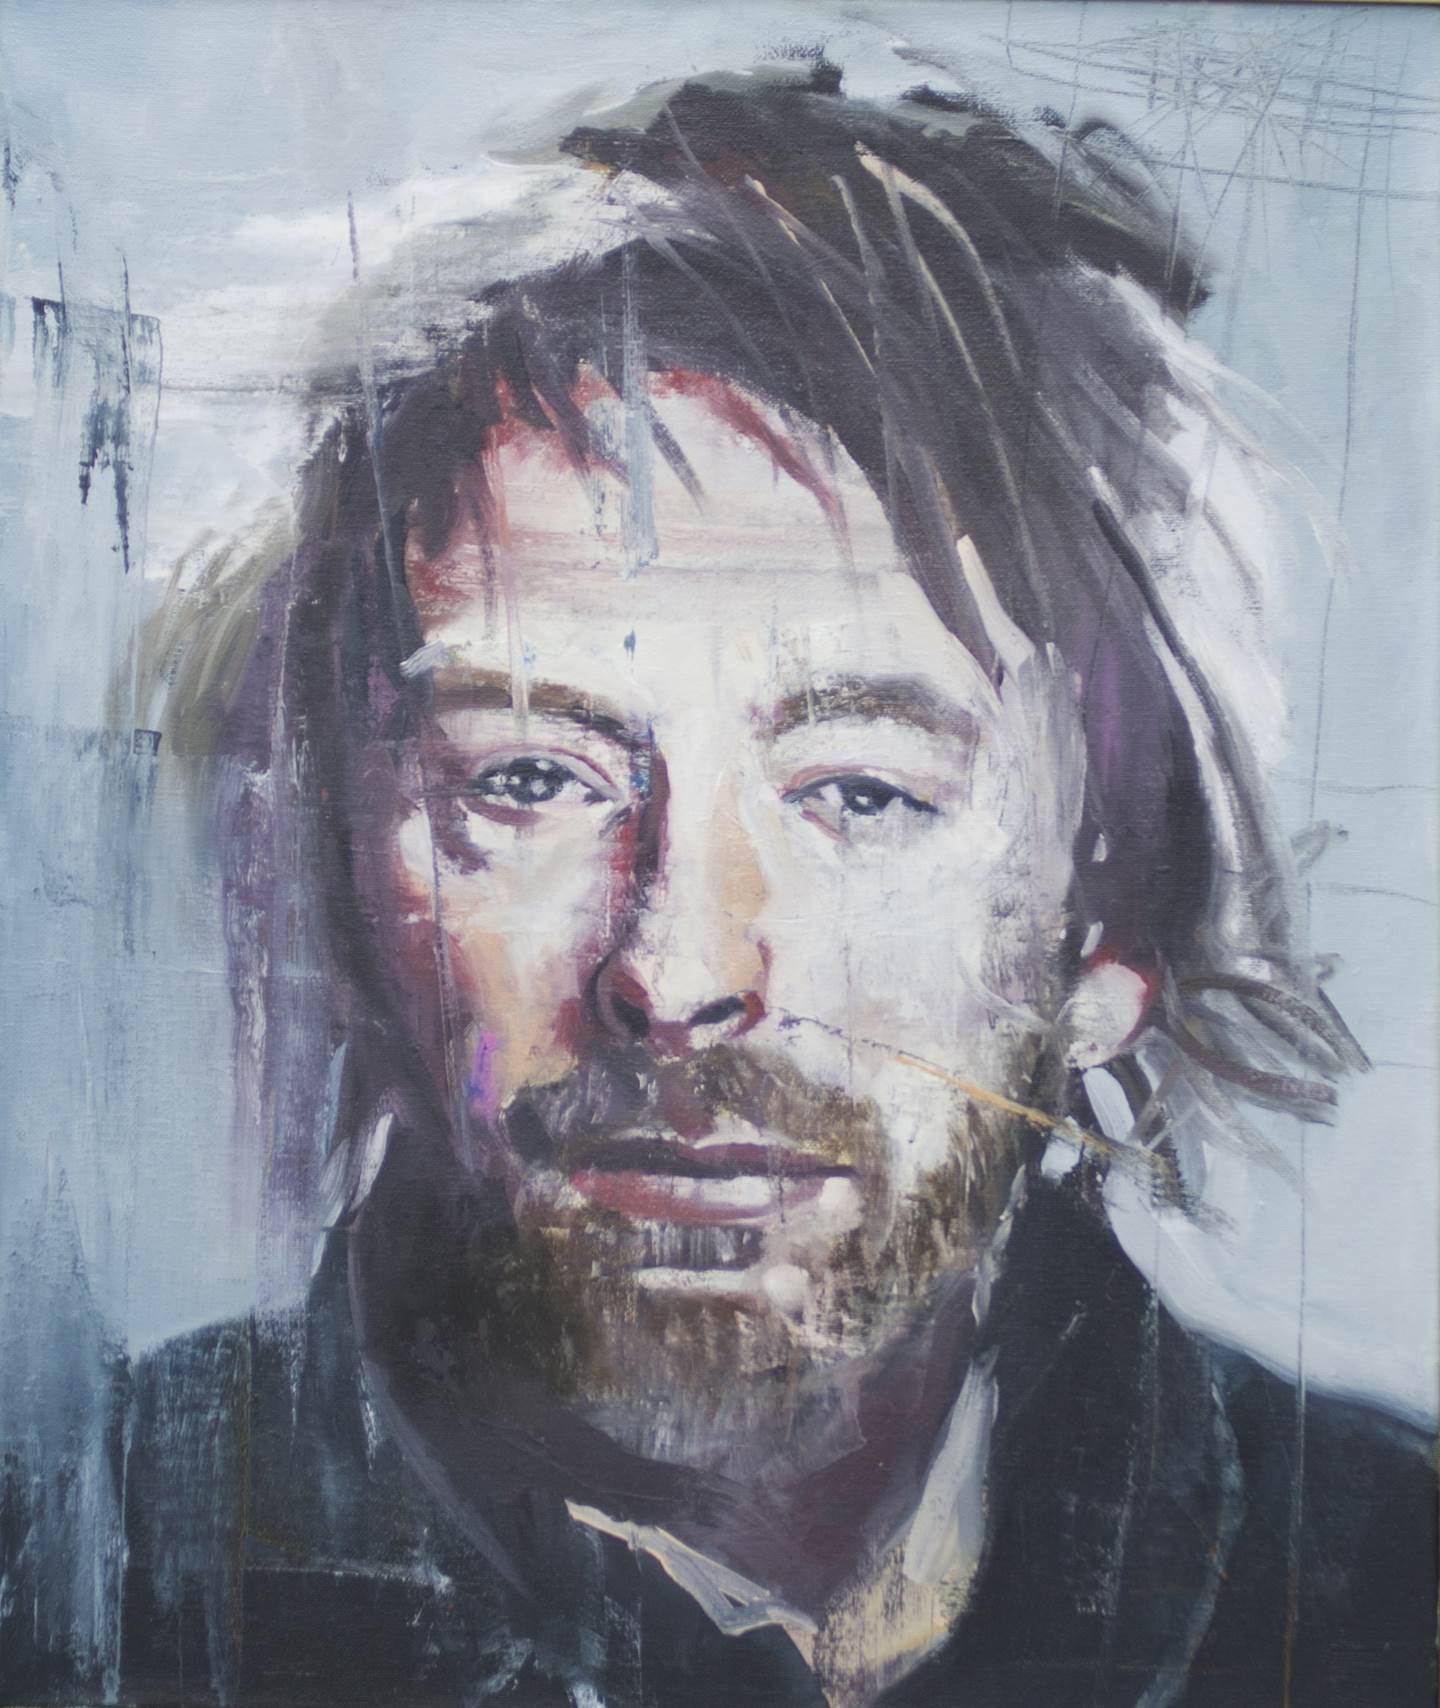 Thom Yorke, original Portrait  Painting by Ricardo Gonçalves